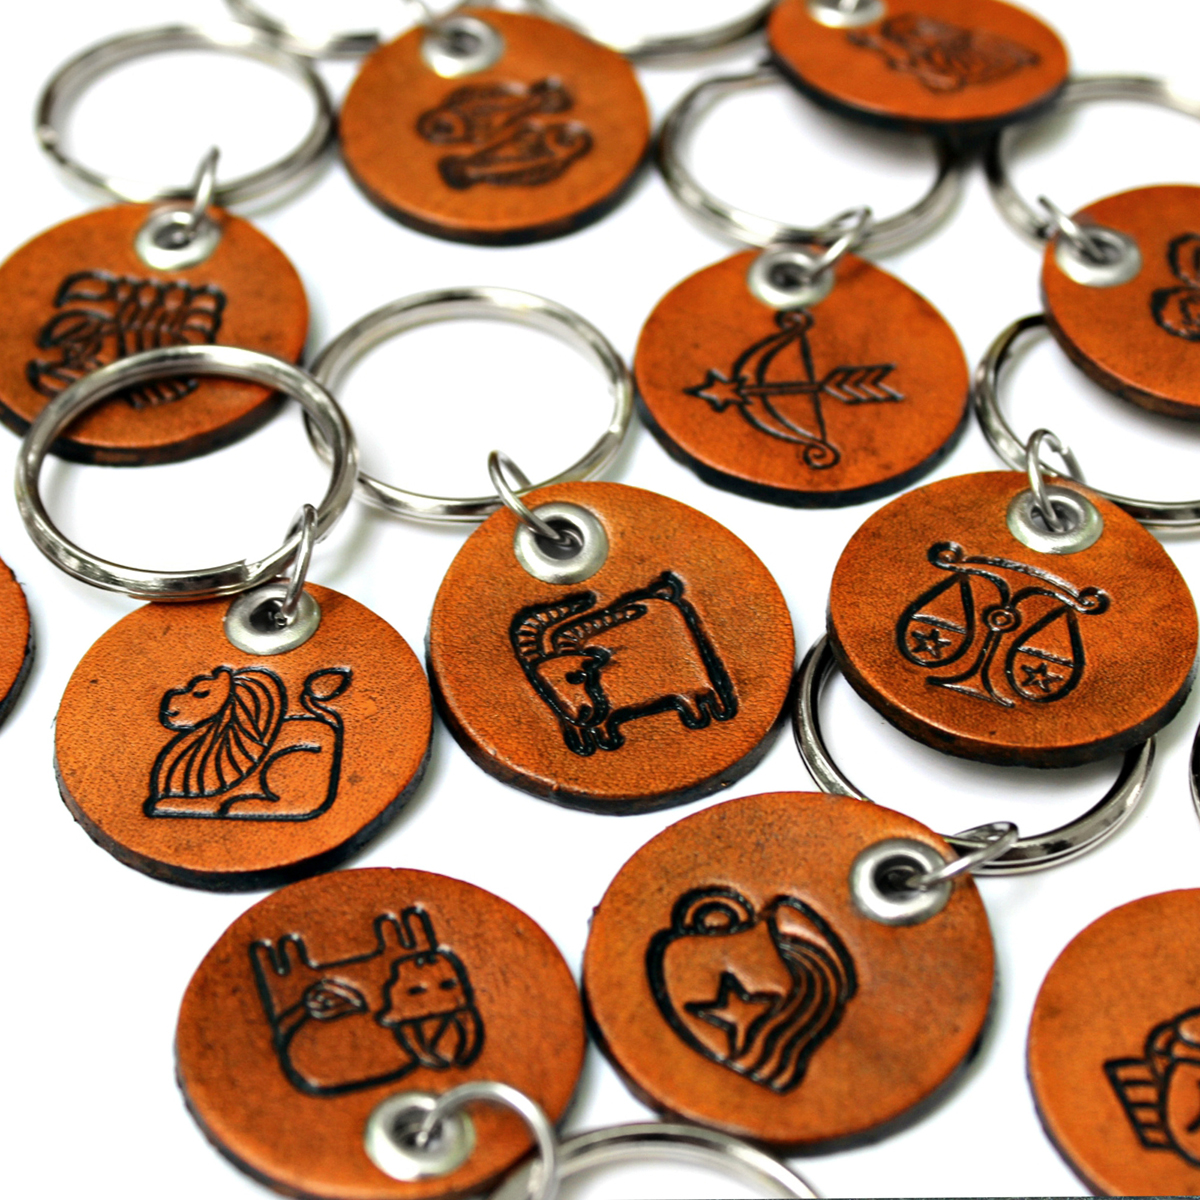 horoscope-key-chains-leather_2